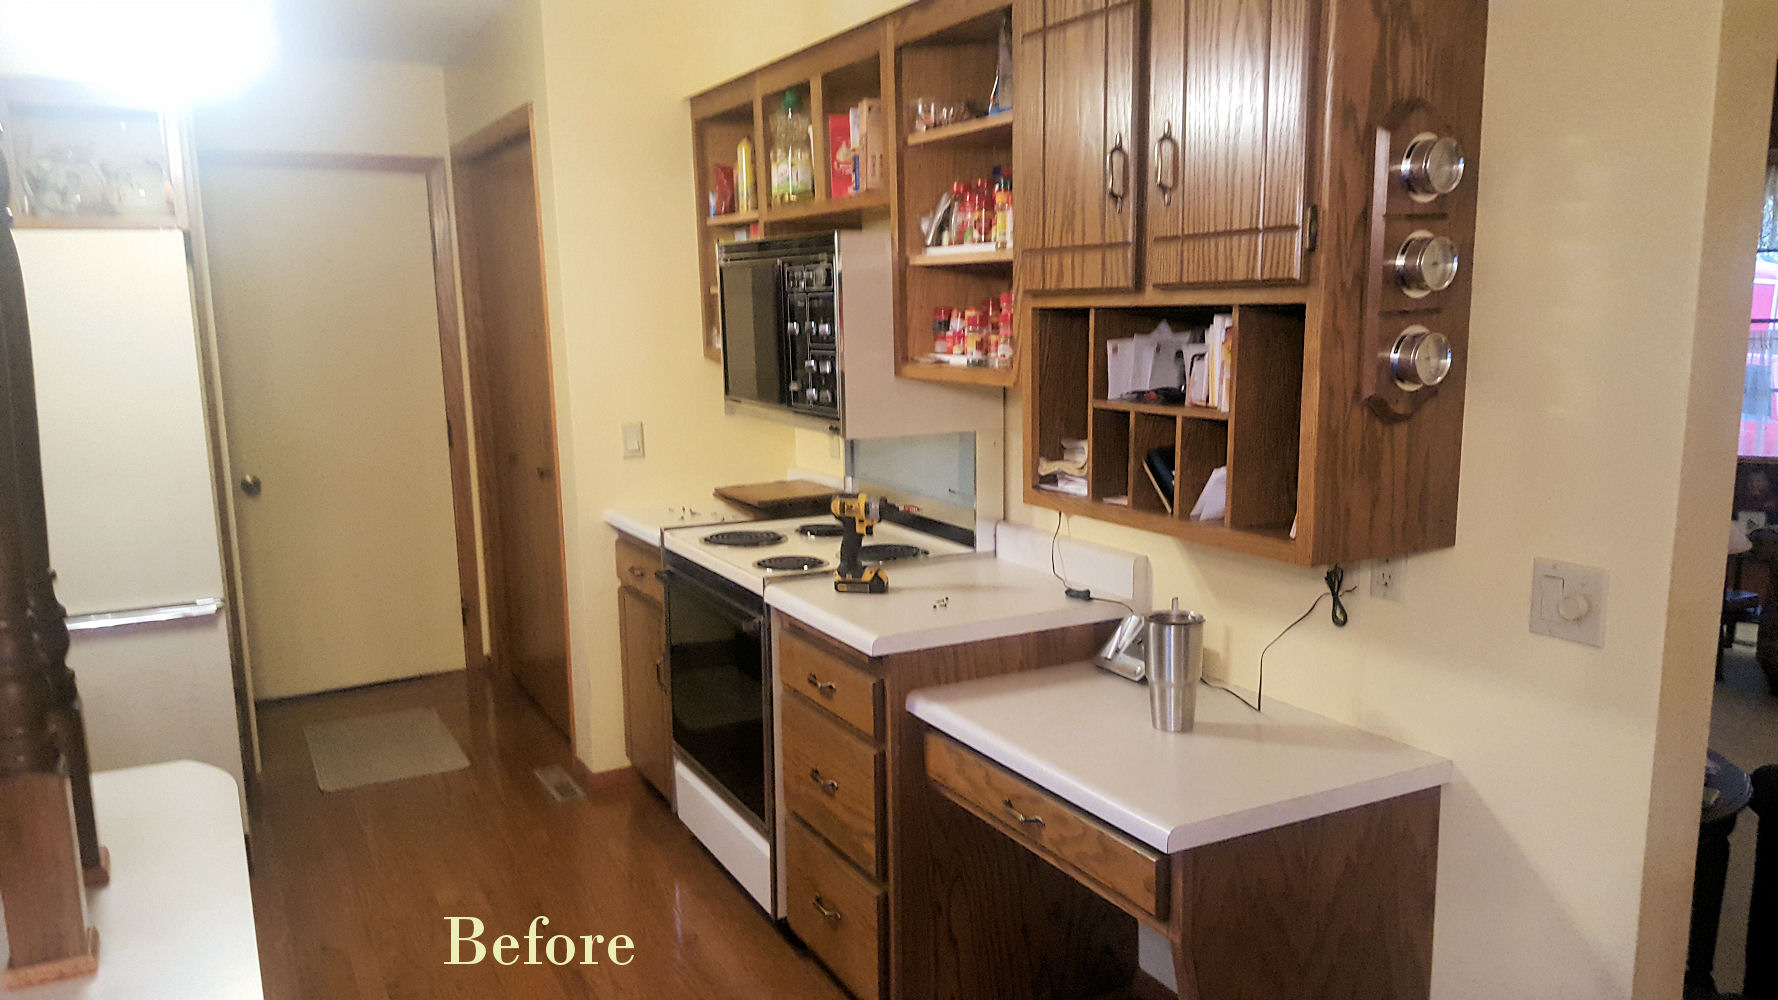 Serene Before Kitchen Remodel Kitchen Remodel Galleries Projects Kitchen Place Kitchen Remodeling Photo Gallery Kitchen Remodel Photo Gallery kitchen Kitchen Remodel Photo Galleries